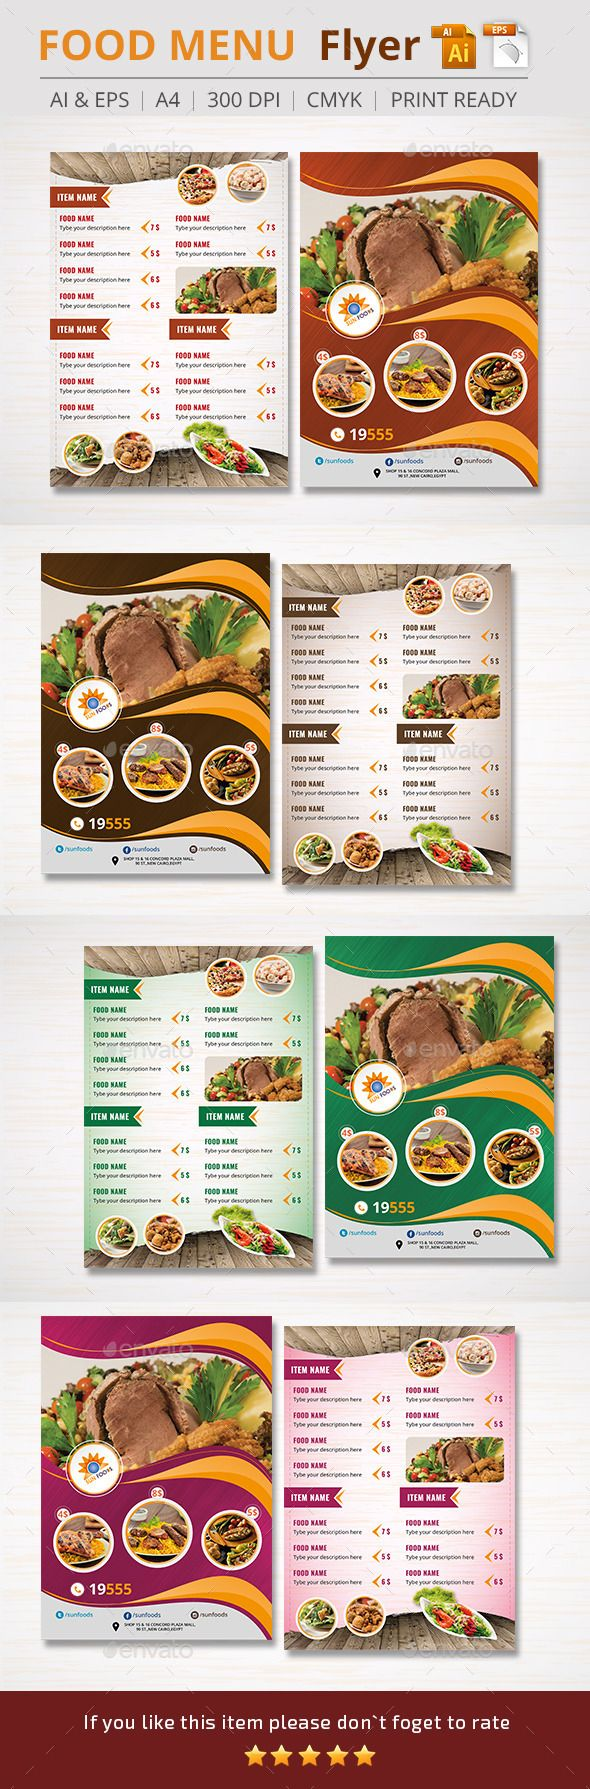 Food Menu Flyer Template #design Download: http://graphicriver.net/item/food-menu-flyer/11027824?ref=ksioks